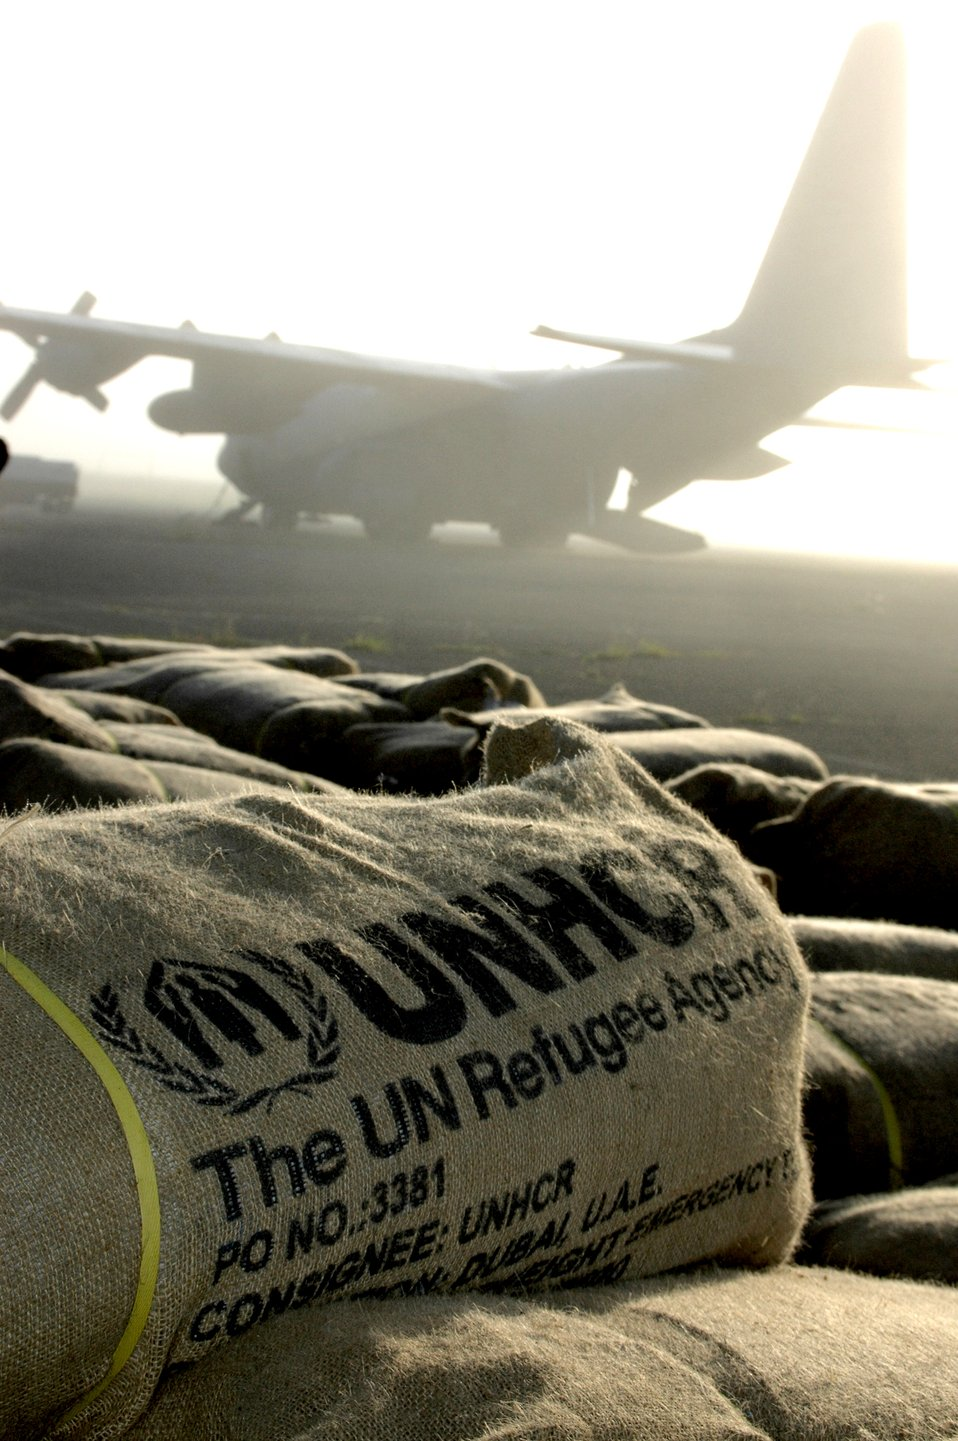 Operation Unity Knight brings relief to Kenya